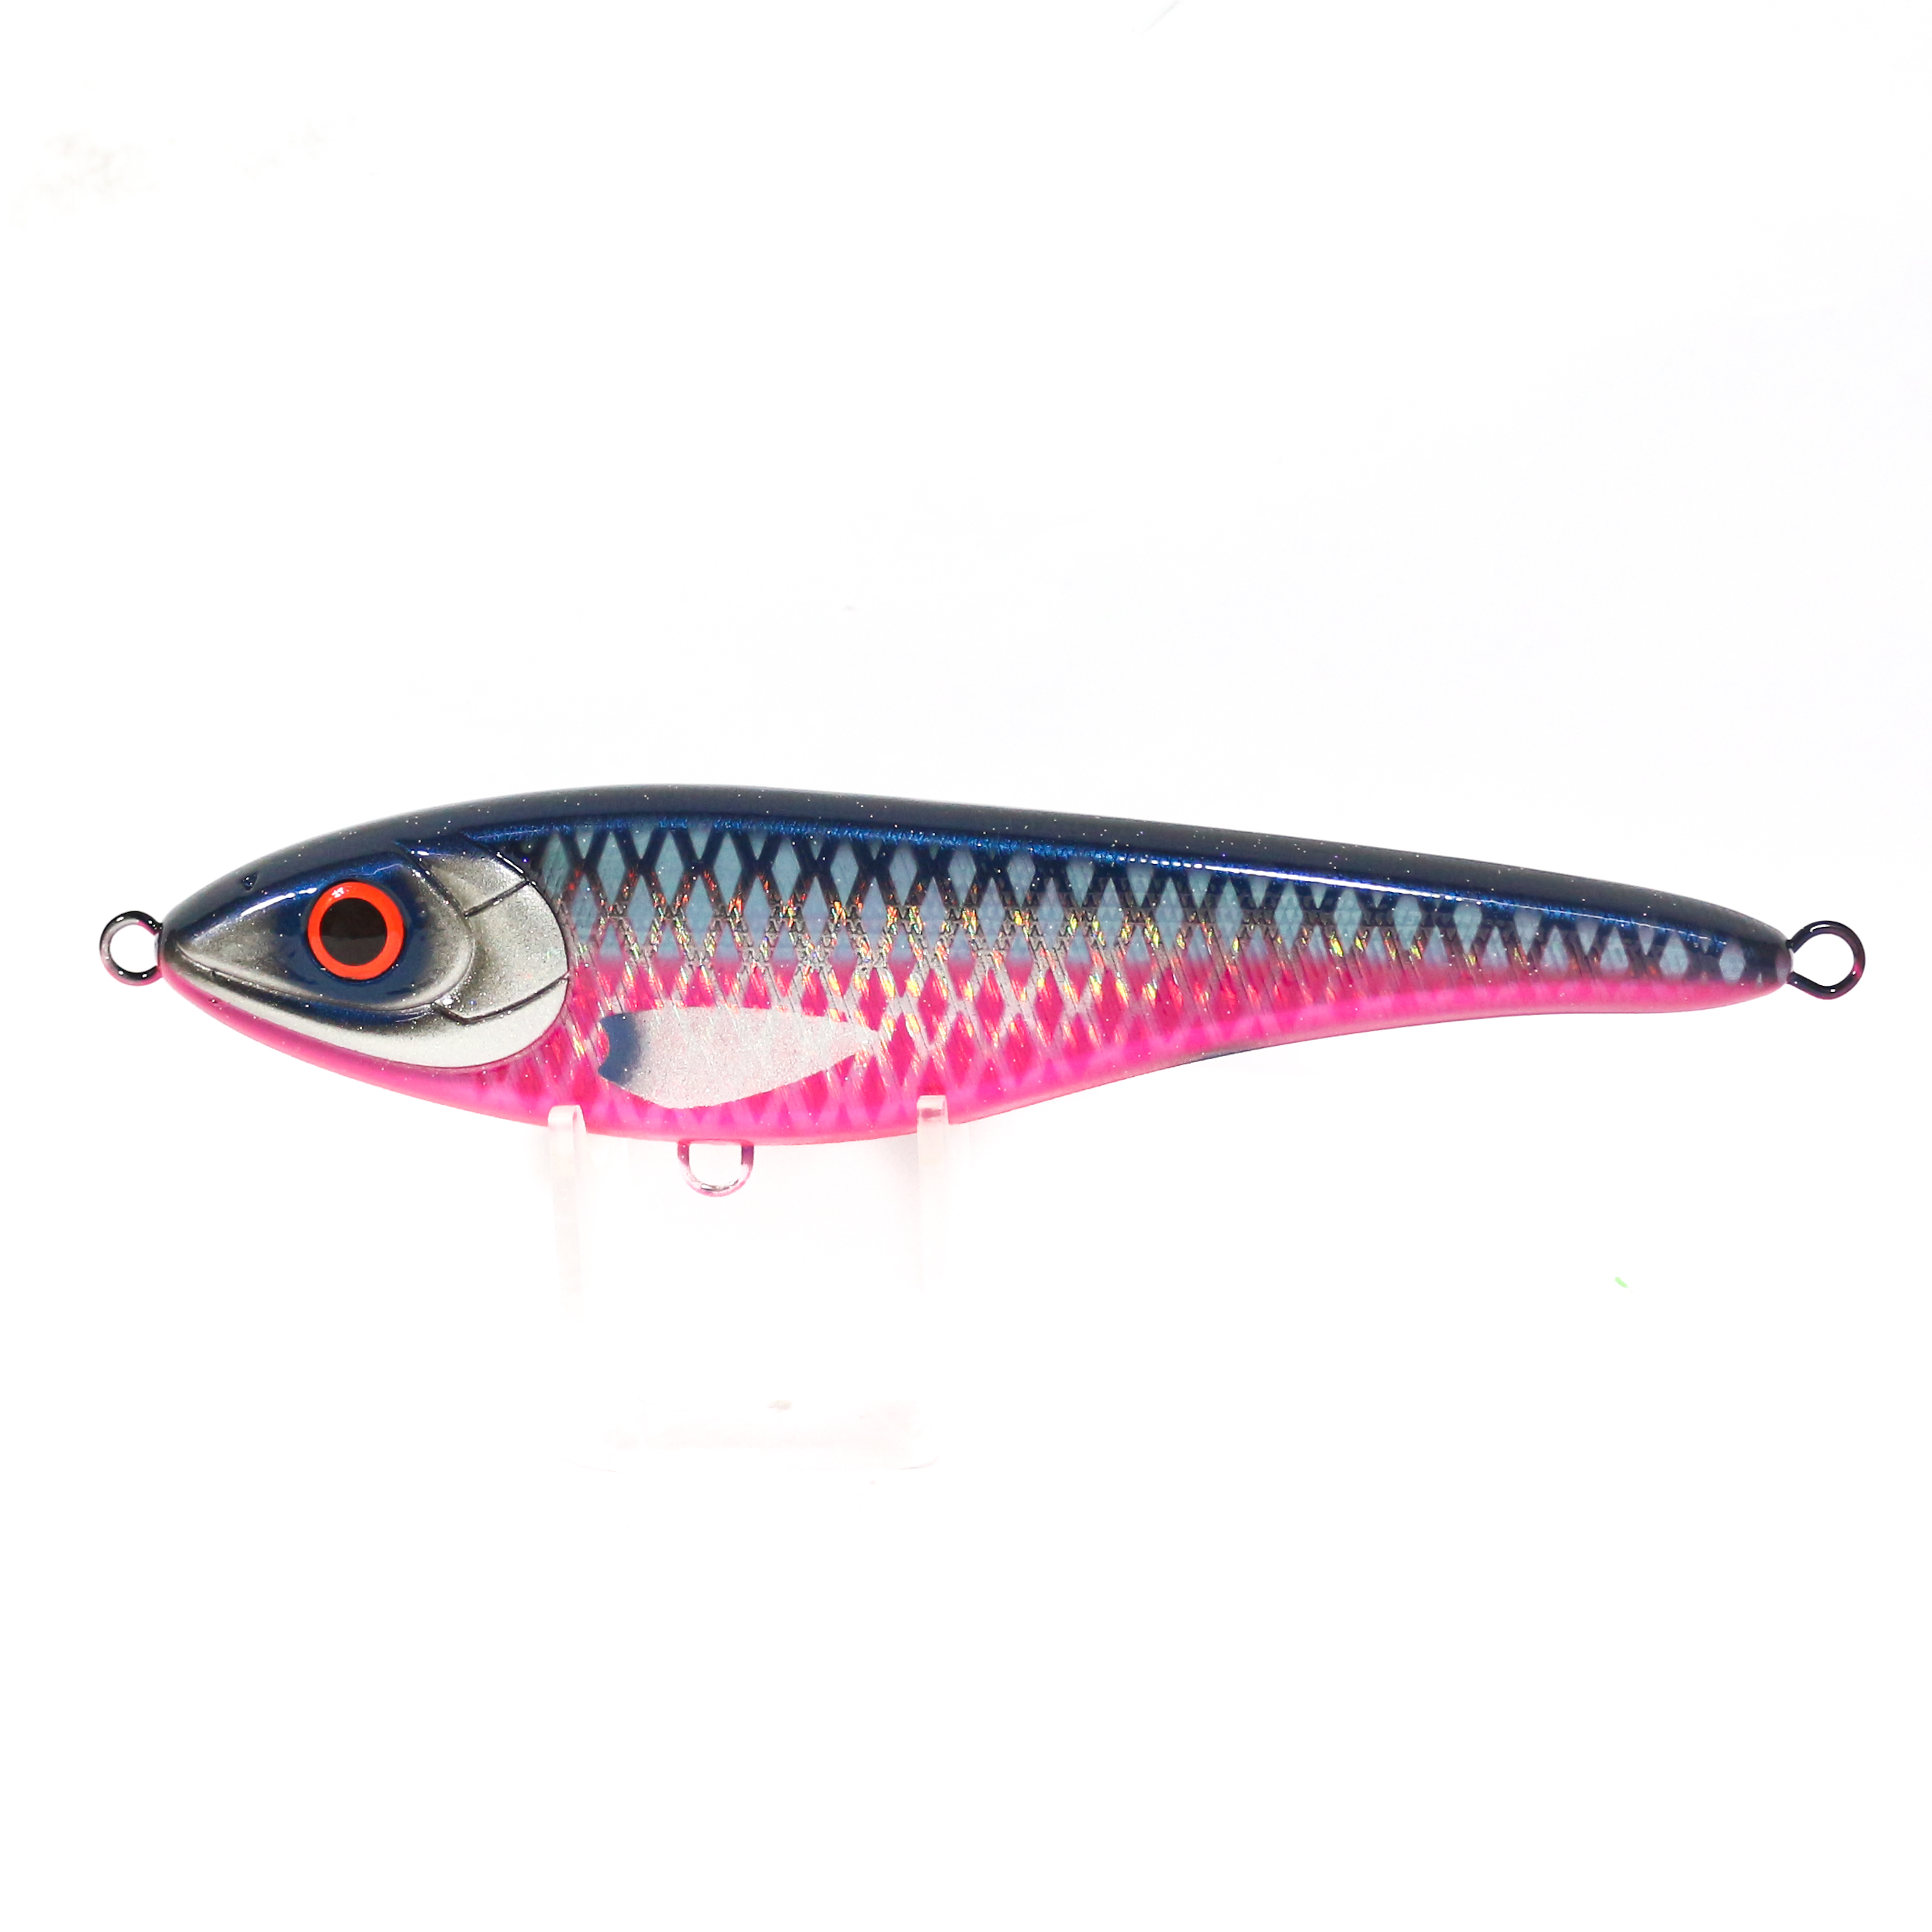 Mangrove Studio Big Bandit 195 mm 78 grams Floating Lure Black Pink (1495)